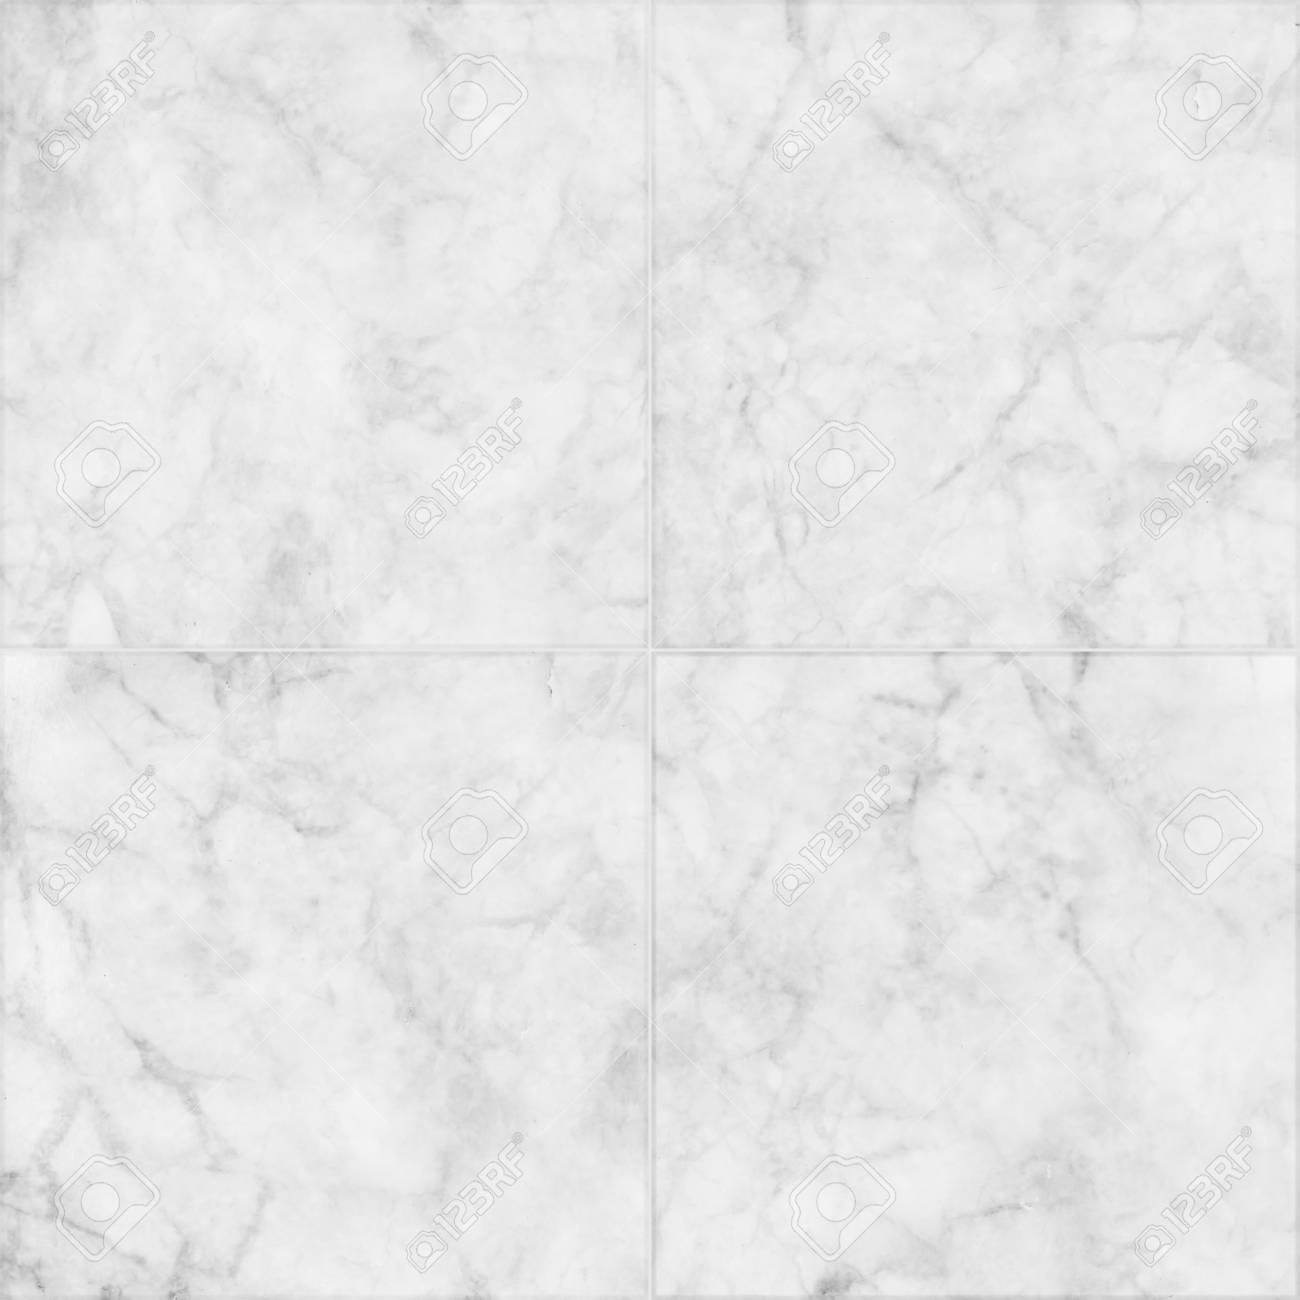 Marble tile floor texture white marble tiles seamless flooring texture detailed structure dailygadgetfo Choice Image